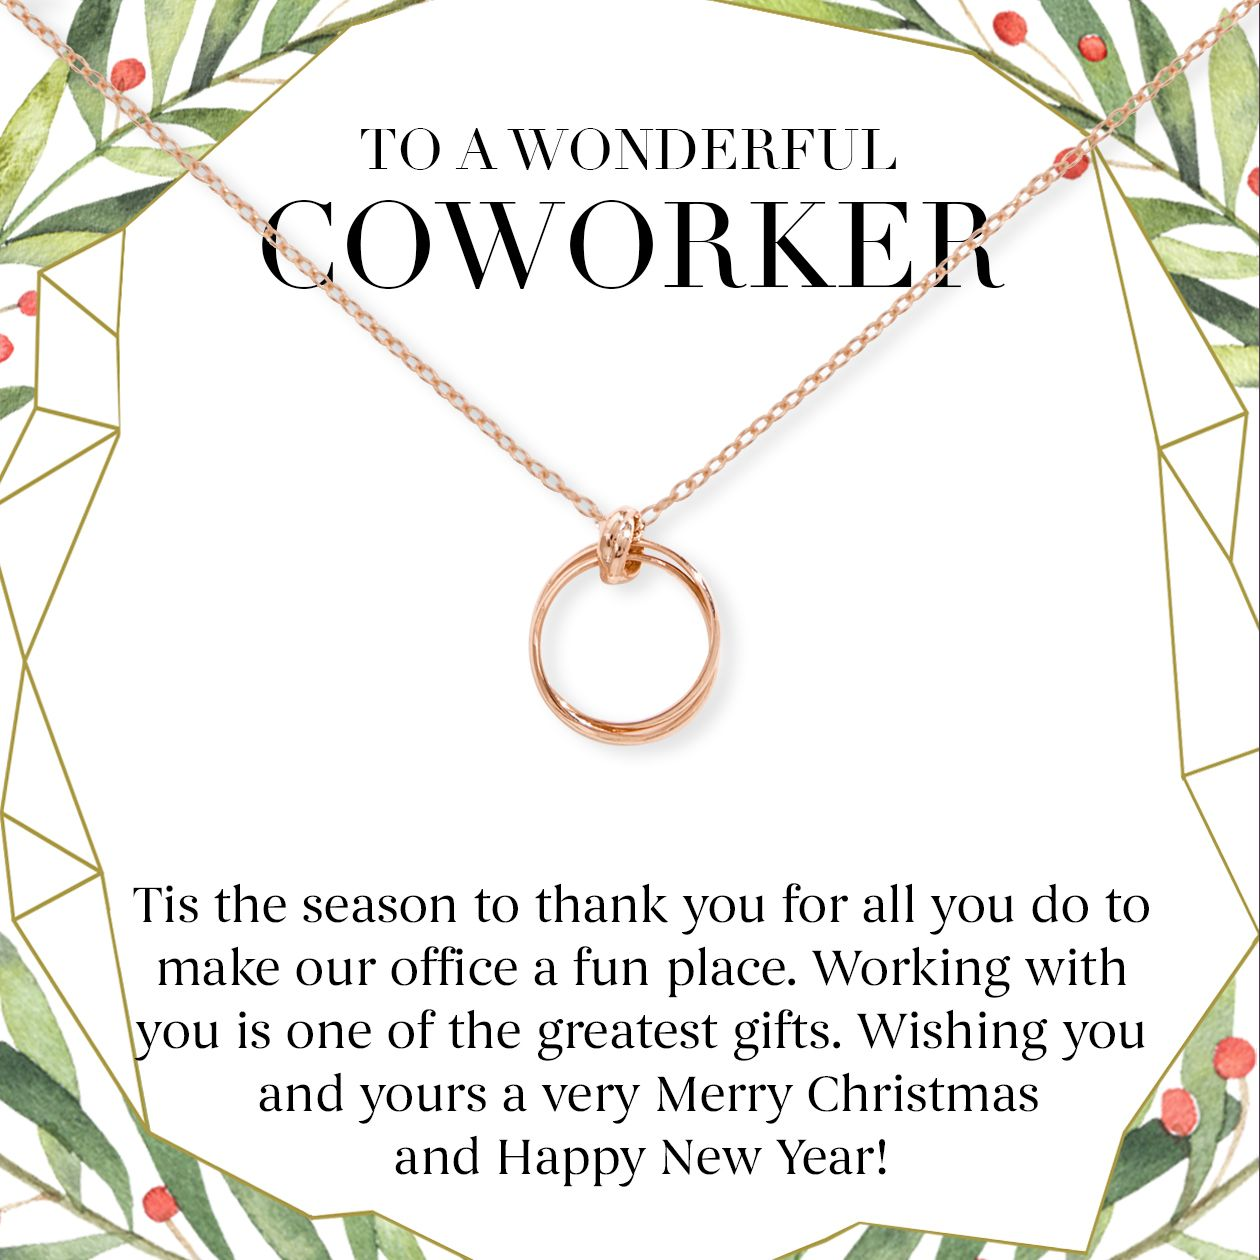 Christmas Gift for Coworker: Best Present, Necklace, Jewelry, Holiday, Gift, Office Gift Exchange